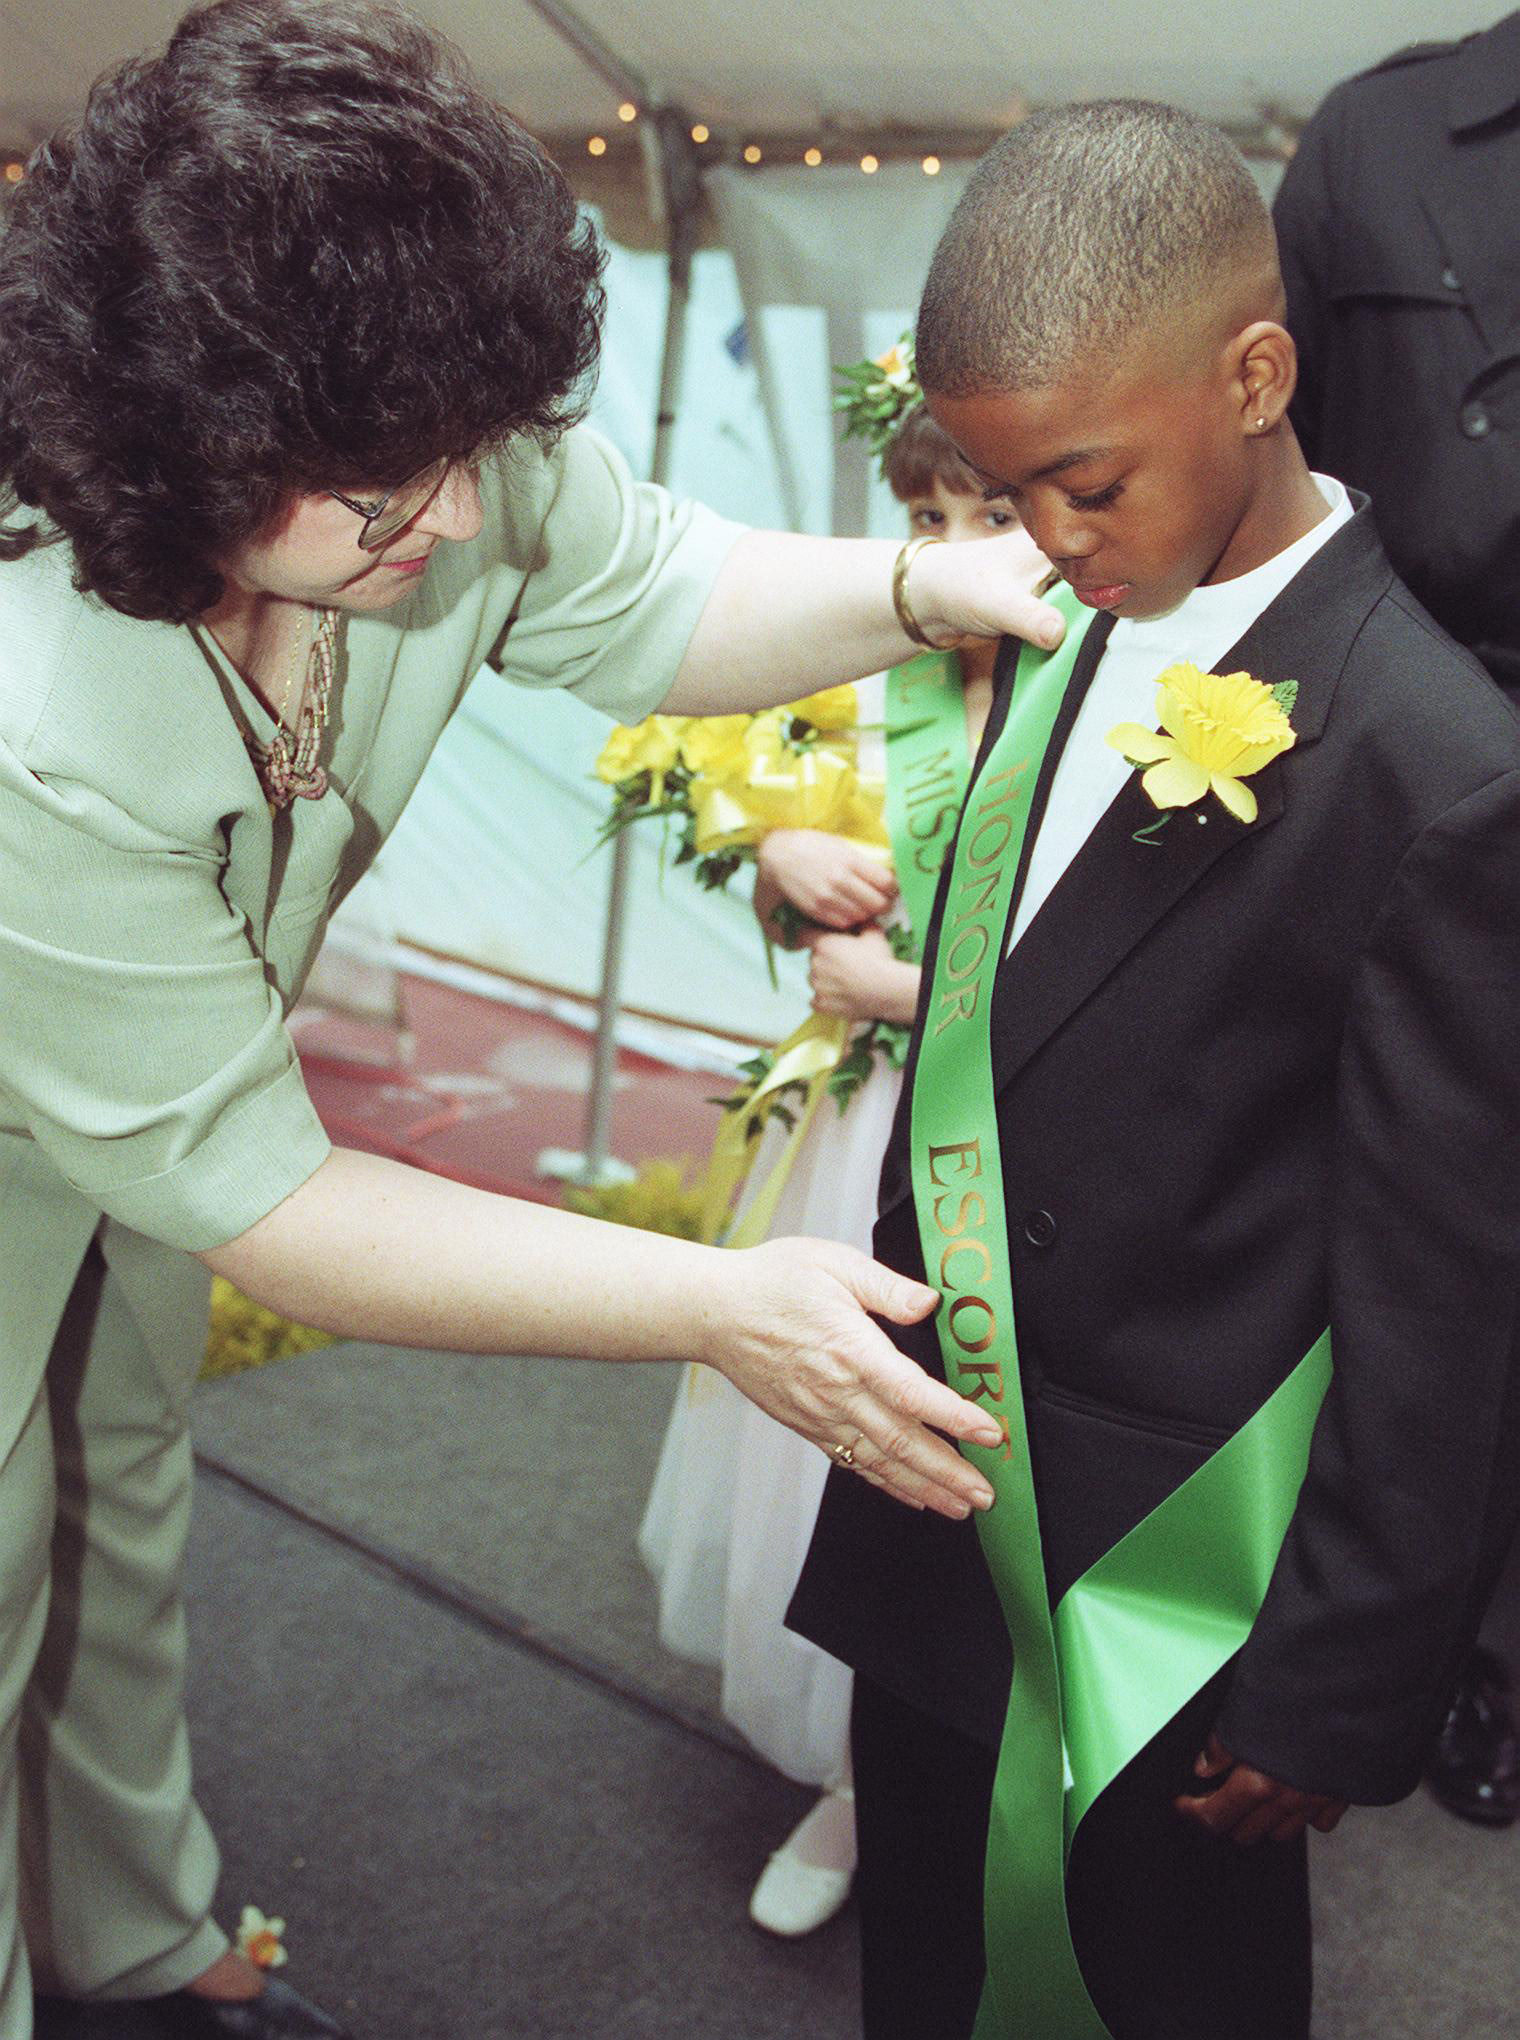 Doreen Roddy puts the sash on Tyler Hoffler, of Casimir Pulaski School, who was chosen as the honor escort for Little Miss Daffodil Wed., April 26 at Hubbard Park.